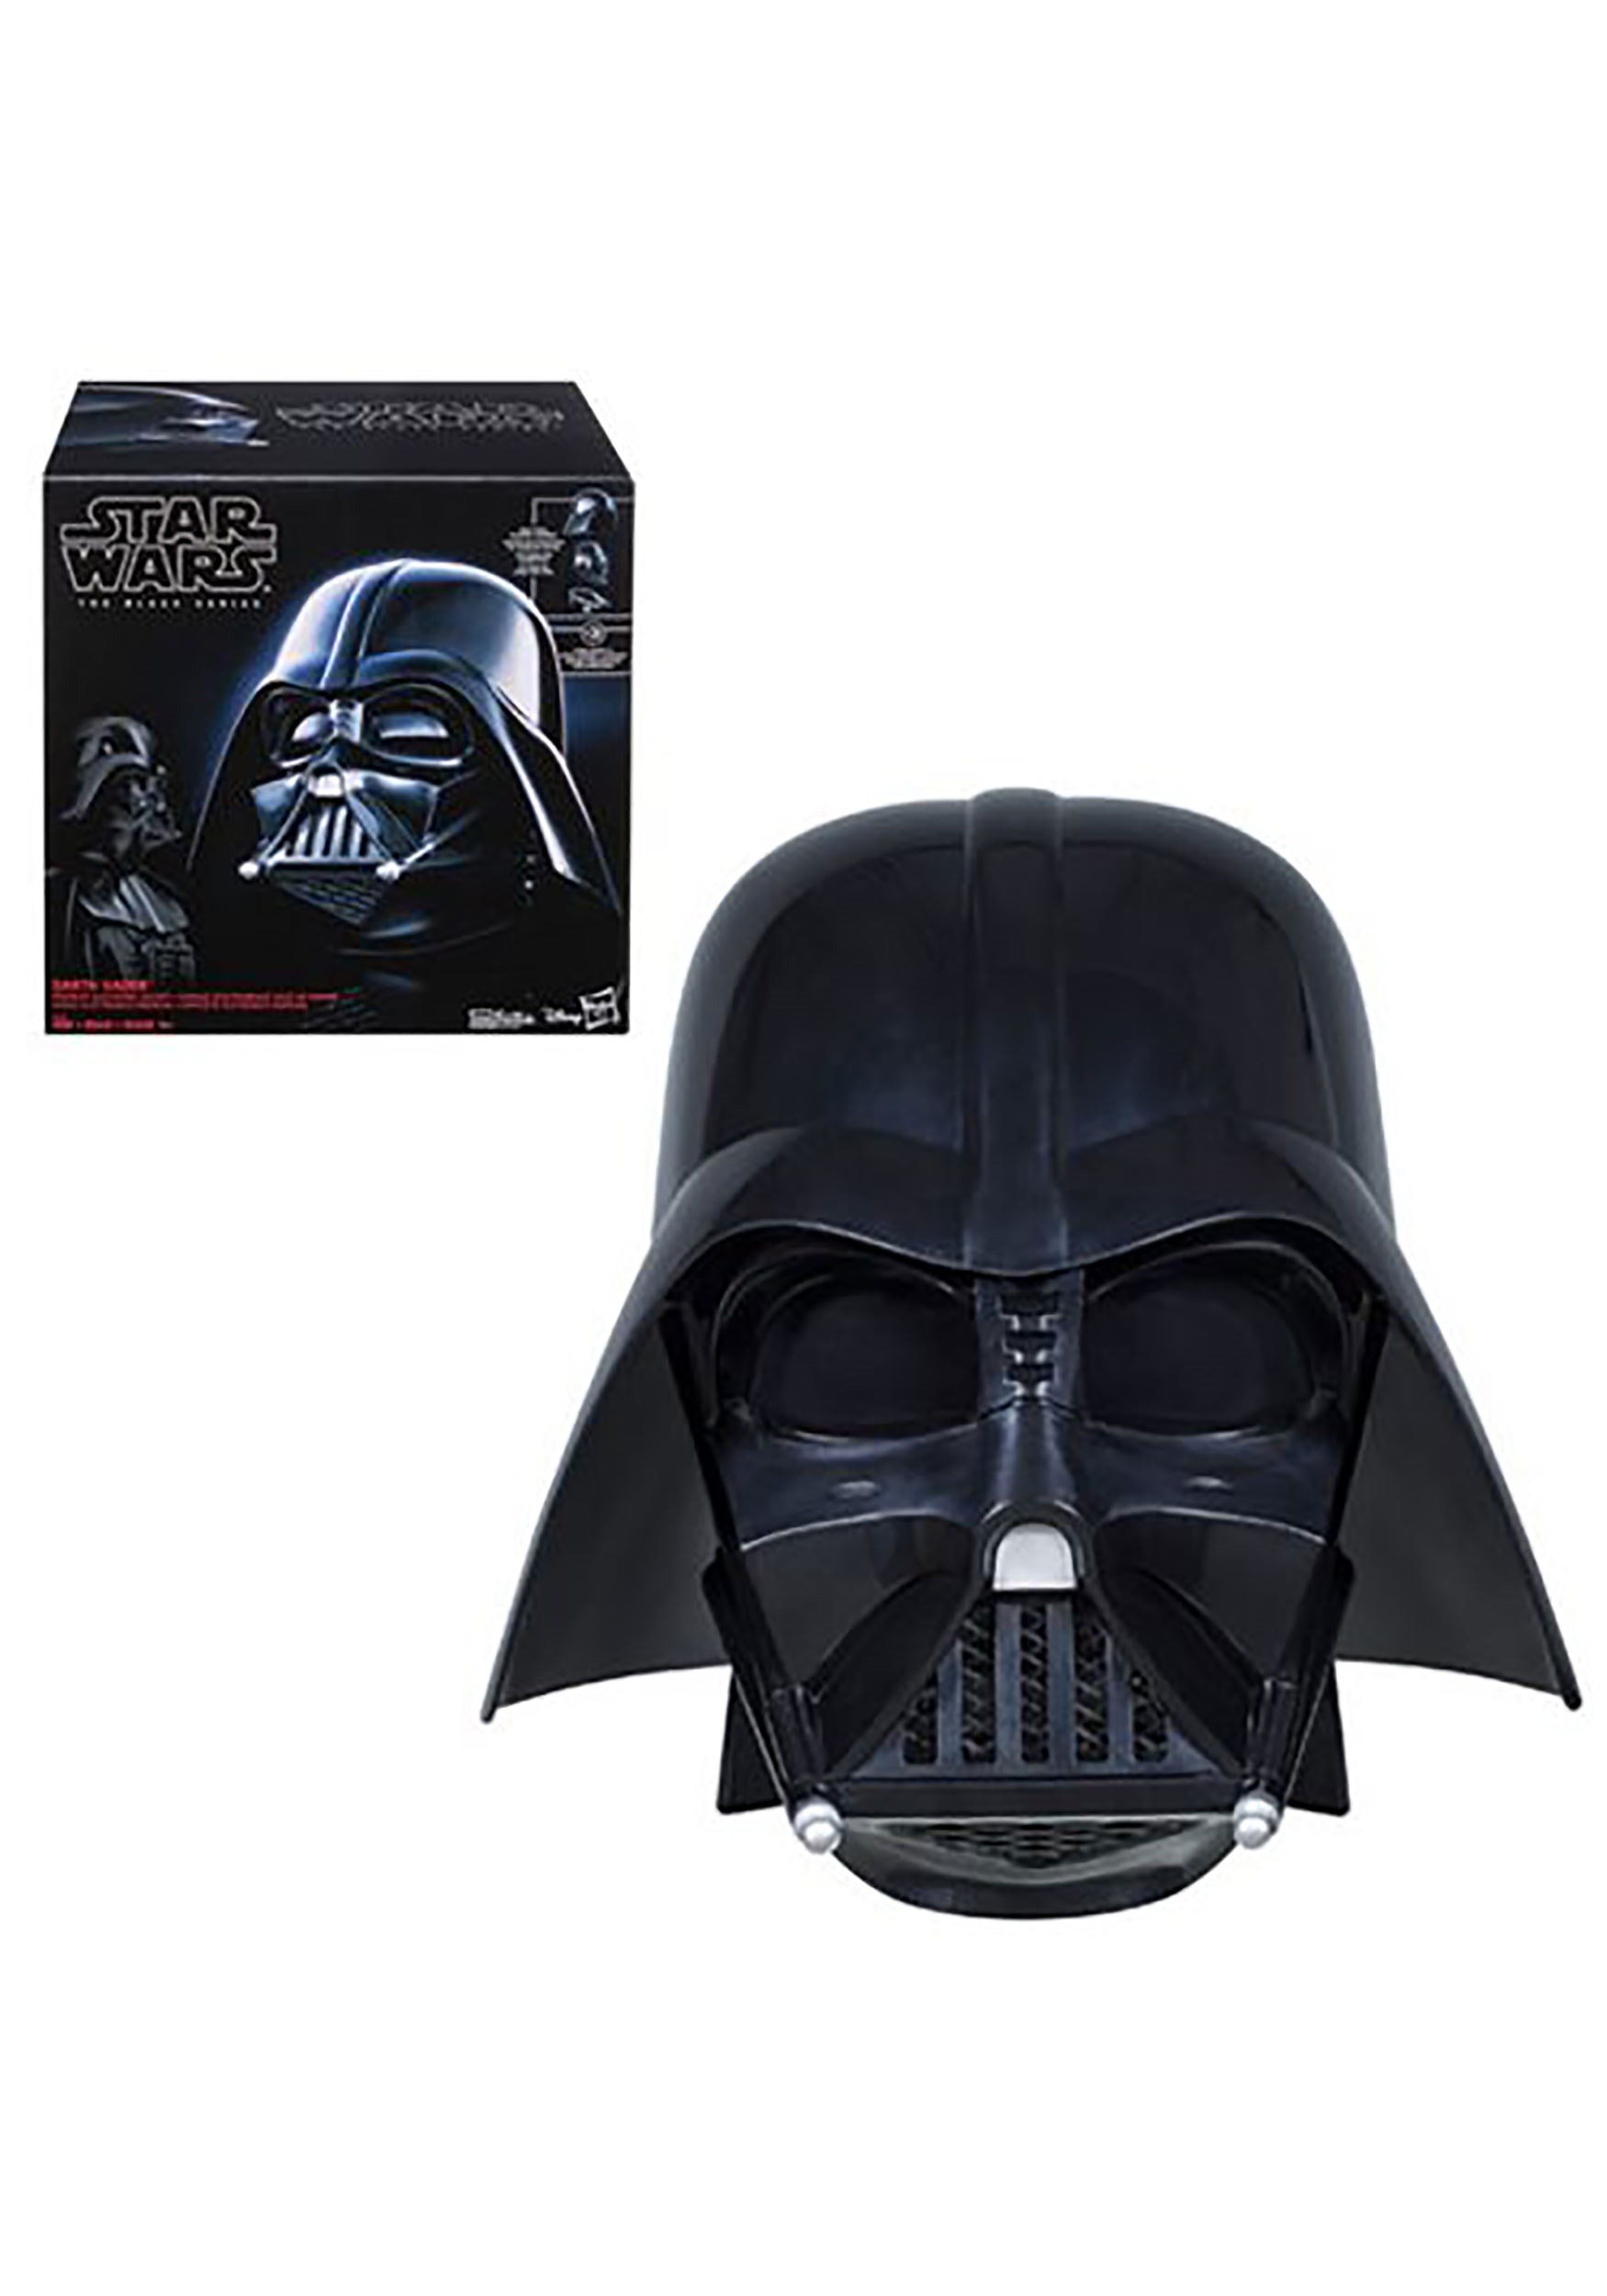 INOpets.com Anything for Pets Parents & Their Pets Darth Vader Star Wars Black Series Helmet